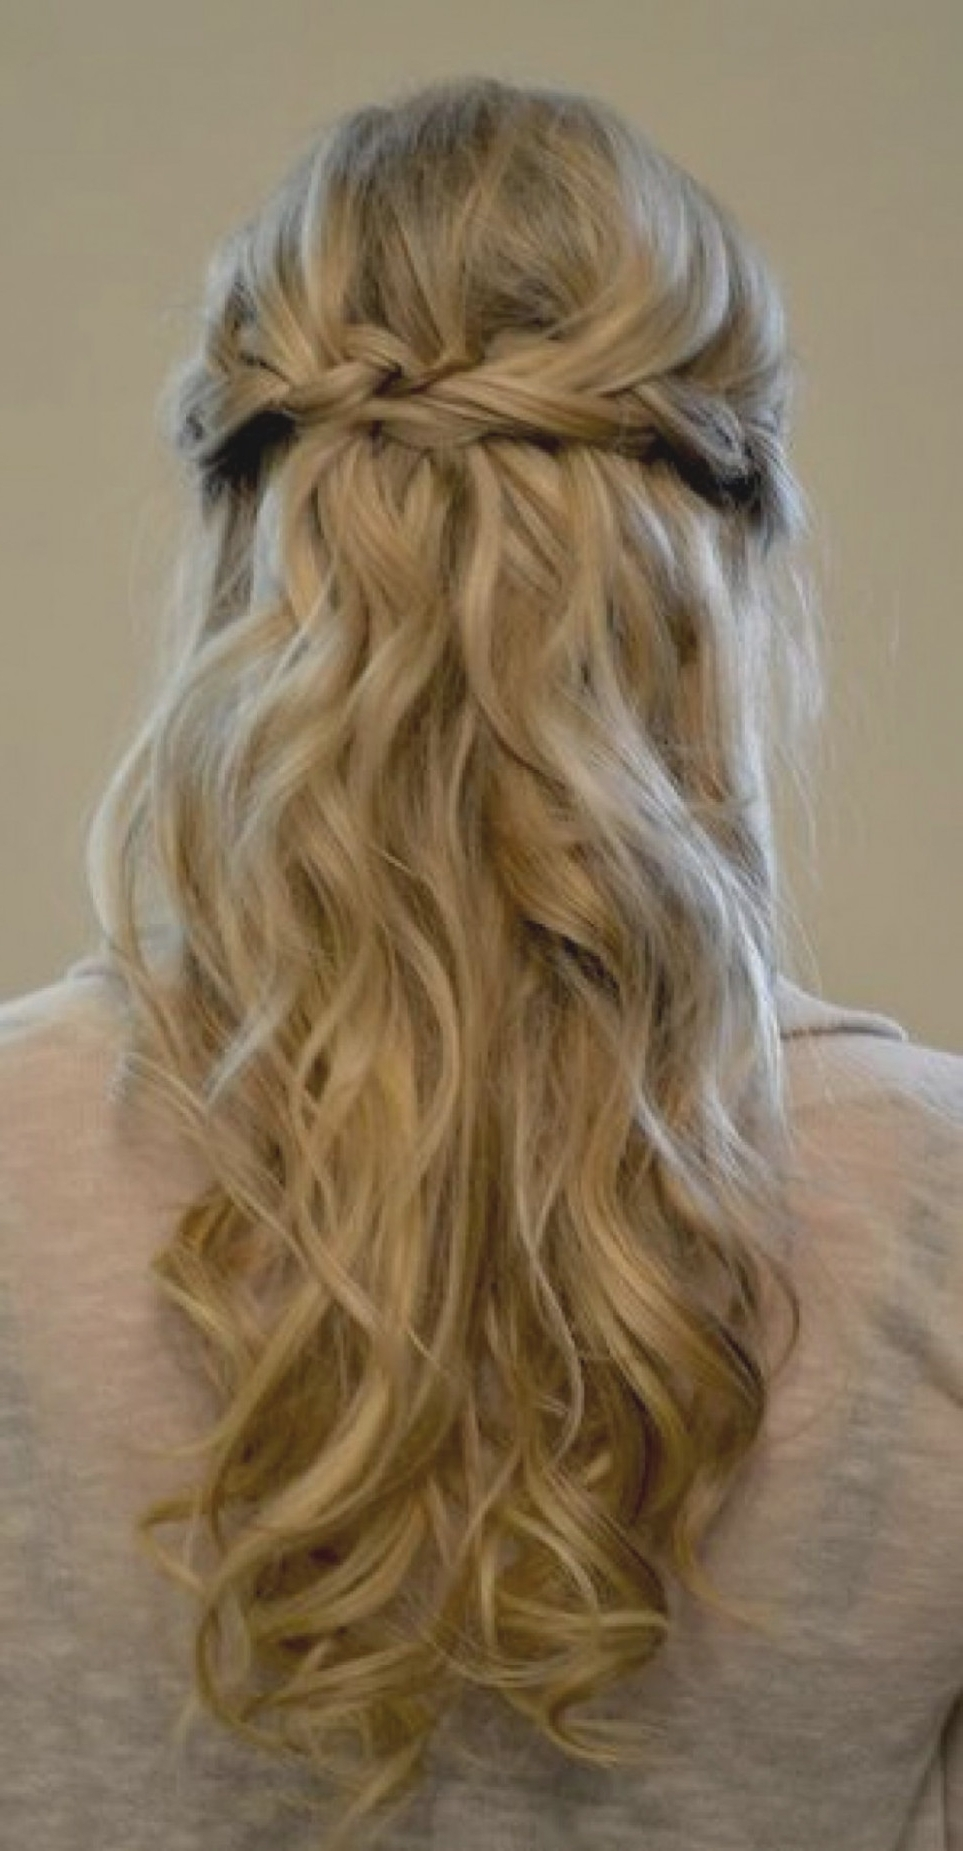 Most Popular Formal Half Ponytail Hairstyles Inside Simple Braided Prom Half Updo Hairstyle For Long Hair – Popular (View 15 of 20)